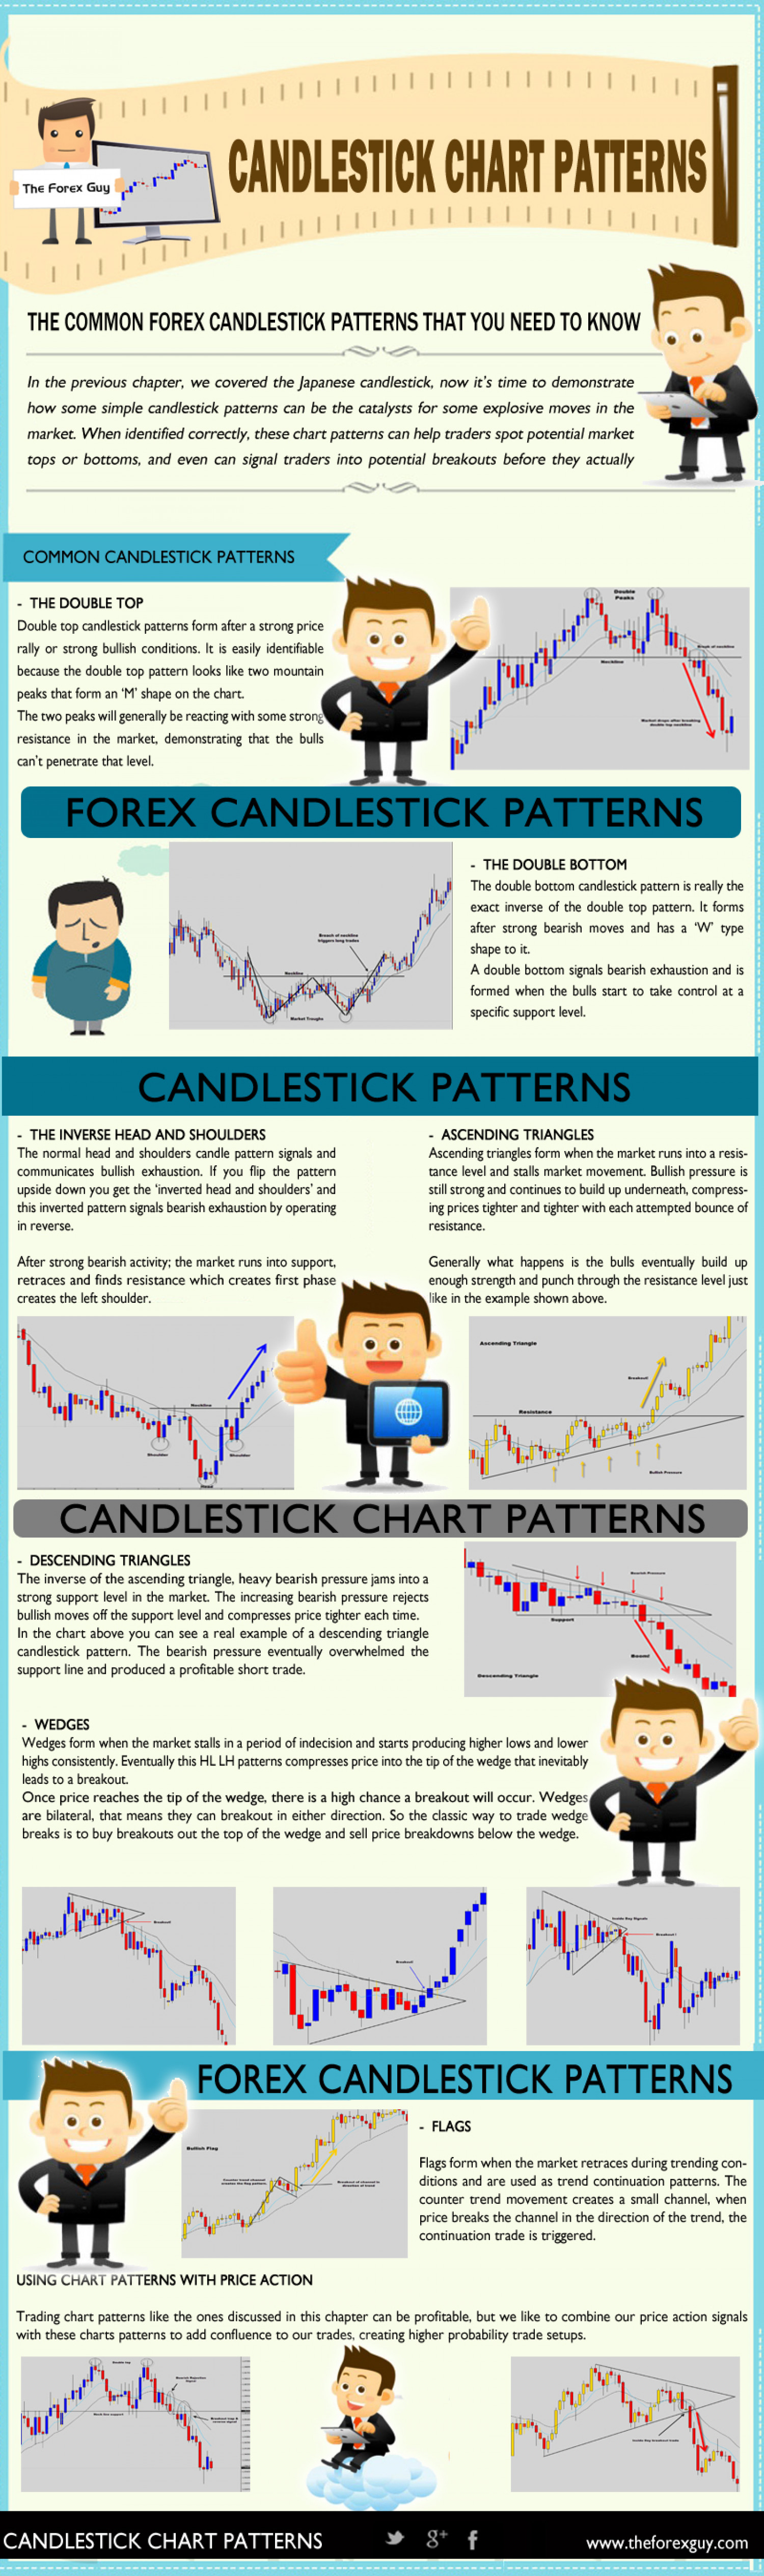 How to use japanese candlesticks in forex trading